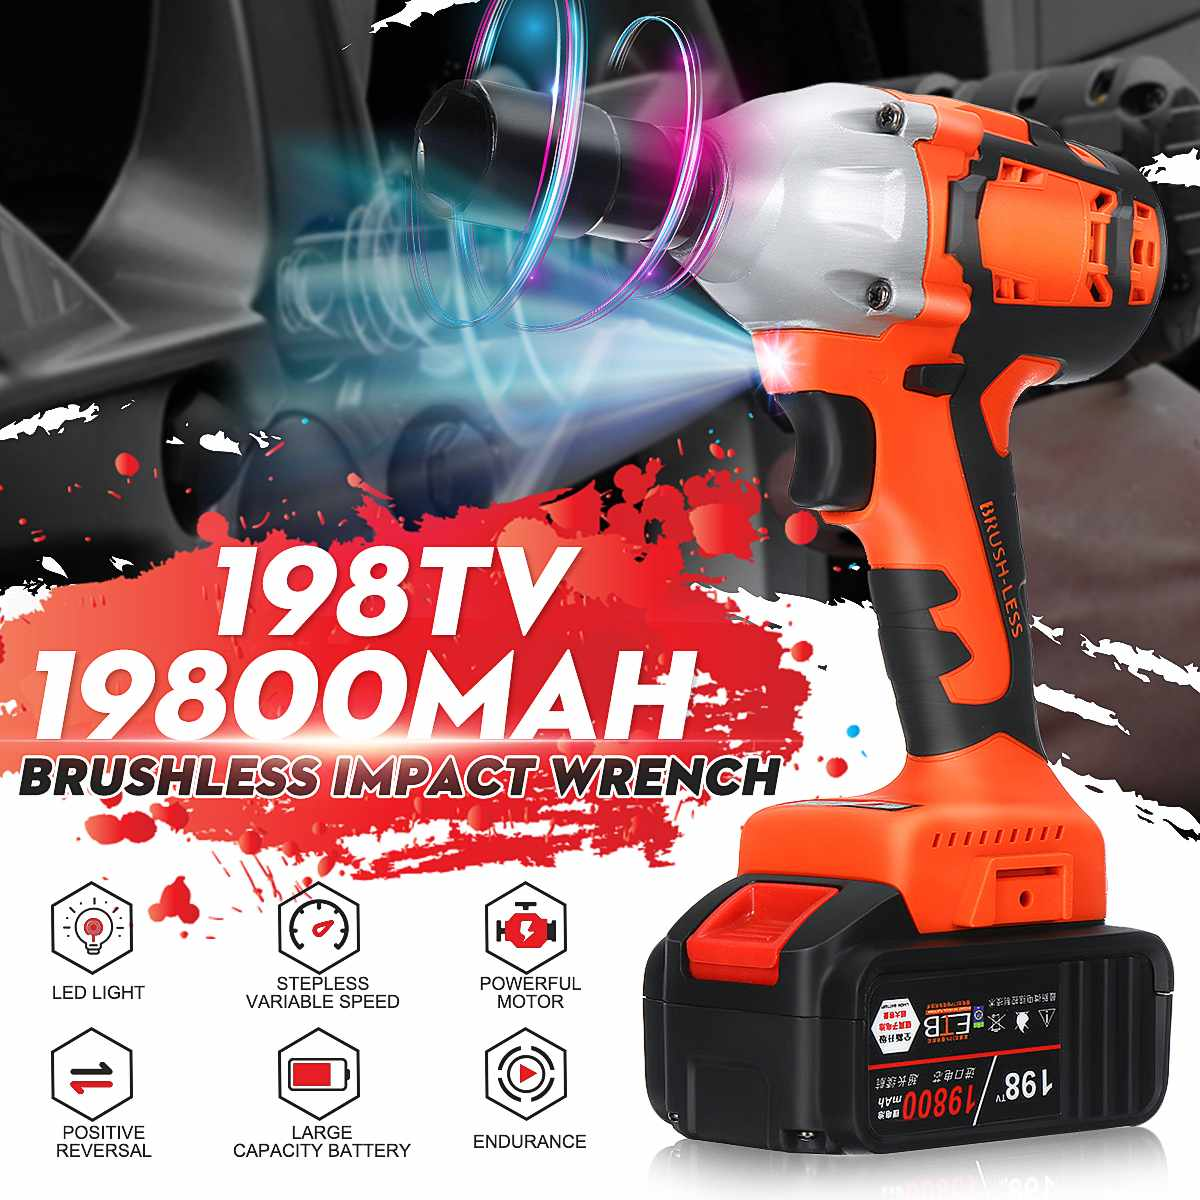 Electric Impact Wrench Infinitely Cordless Speed Brushless Impact Electric Wrench 198TV 19800mAh Rechargeable Lithium Battery